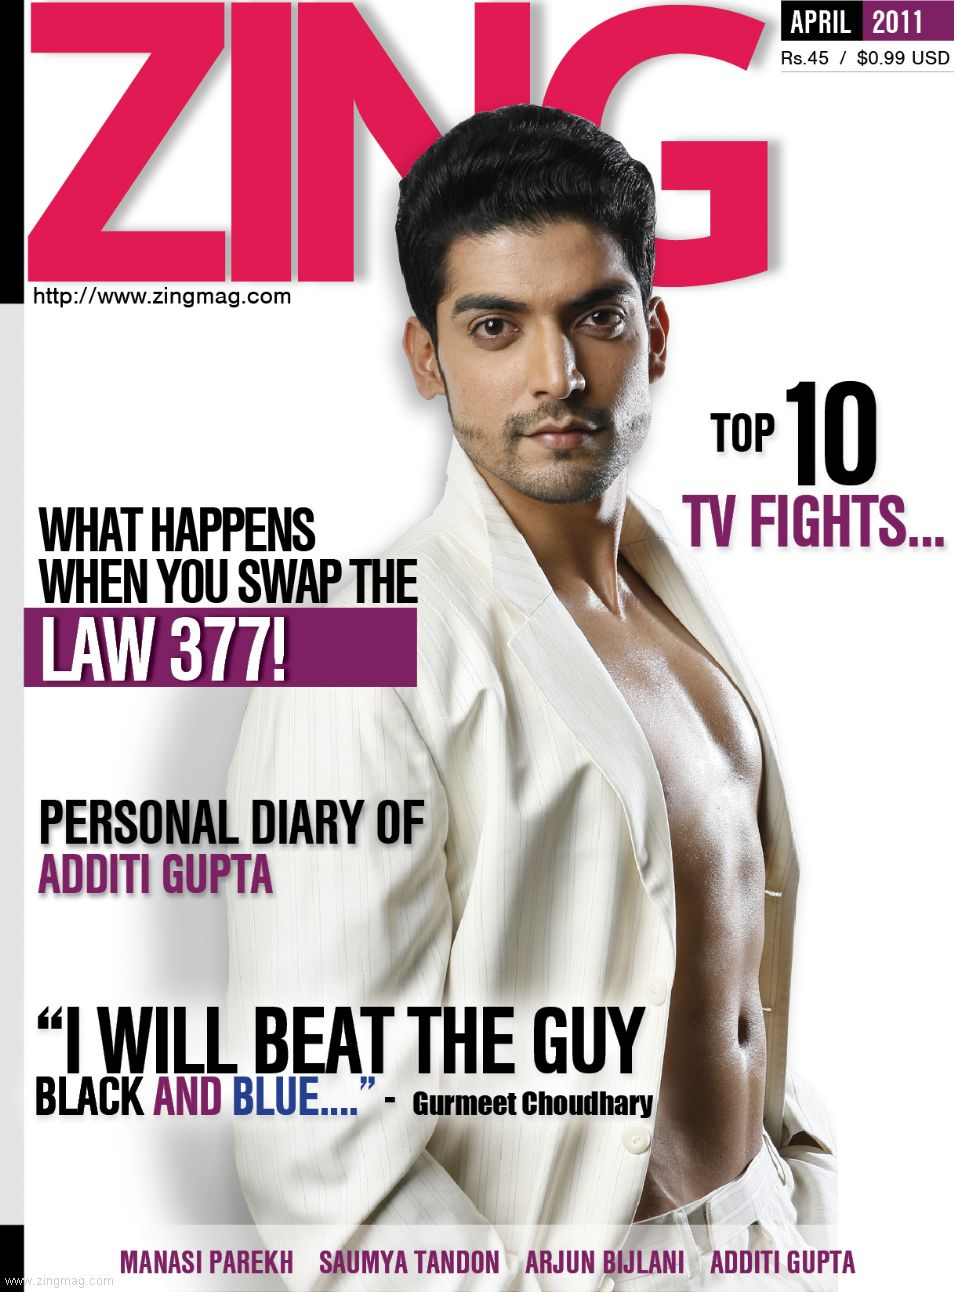 Zing Magazine - April 2011 Cover featuring Gurmeet Choudhary